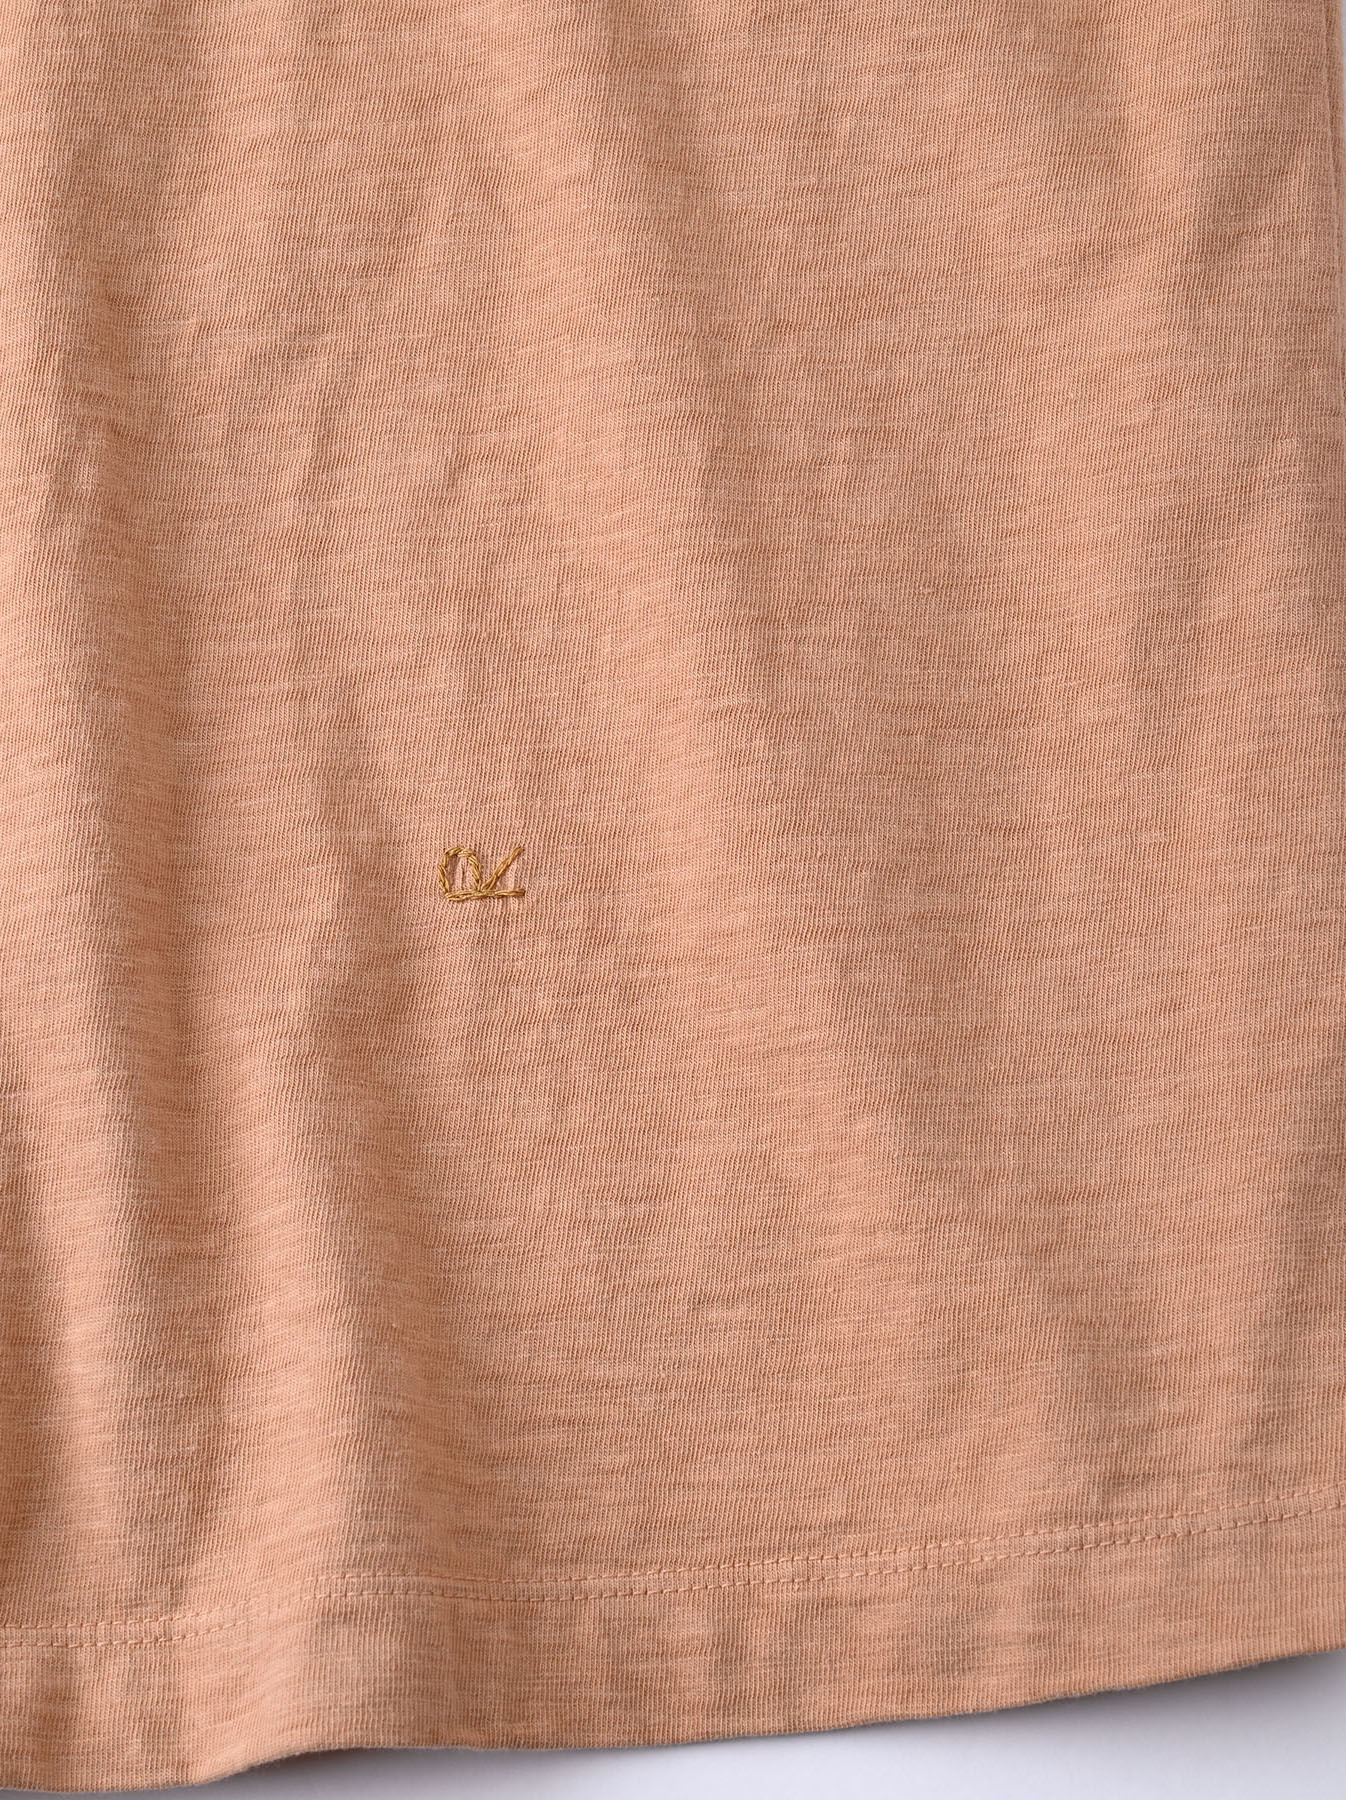 Smile R Embroidery 908 Ocean T-shirt (0621)-9